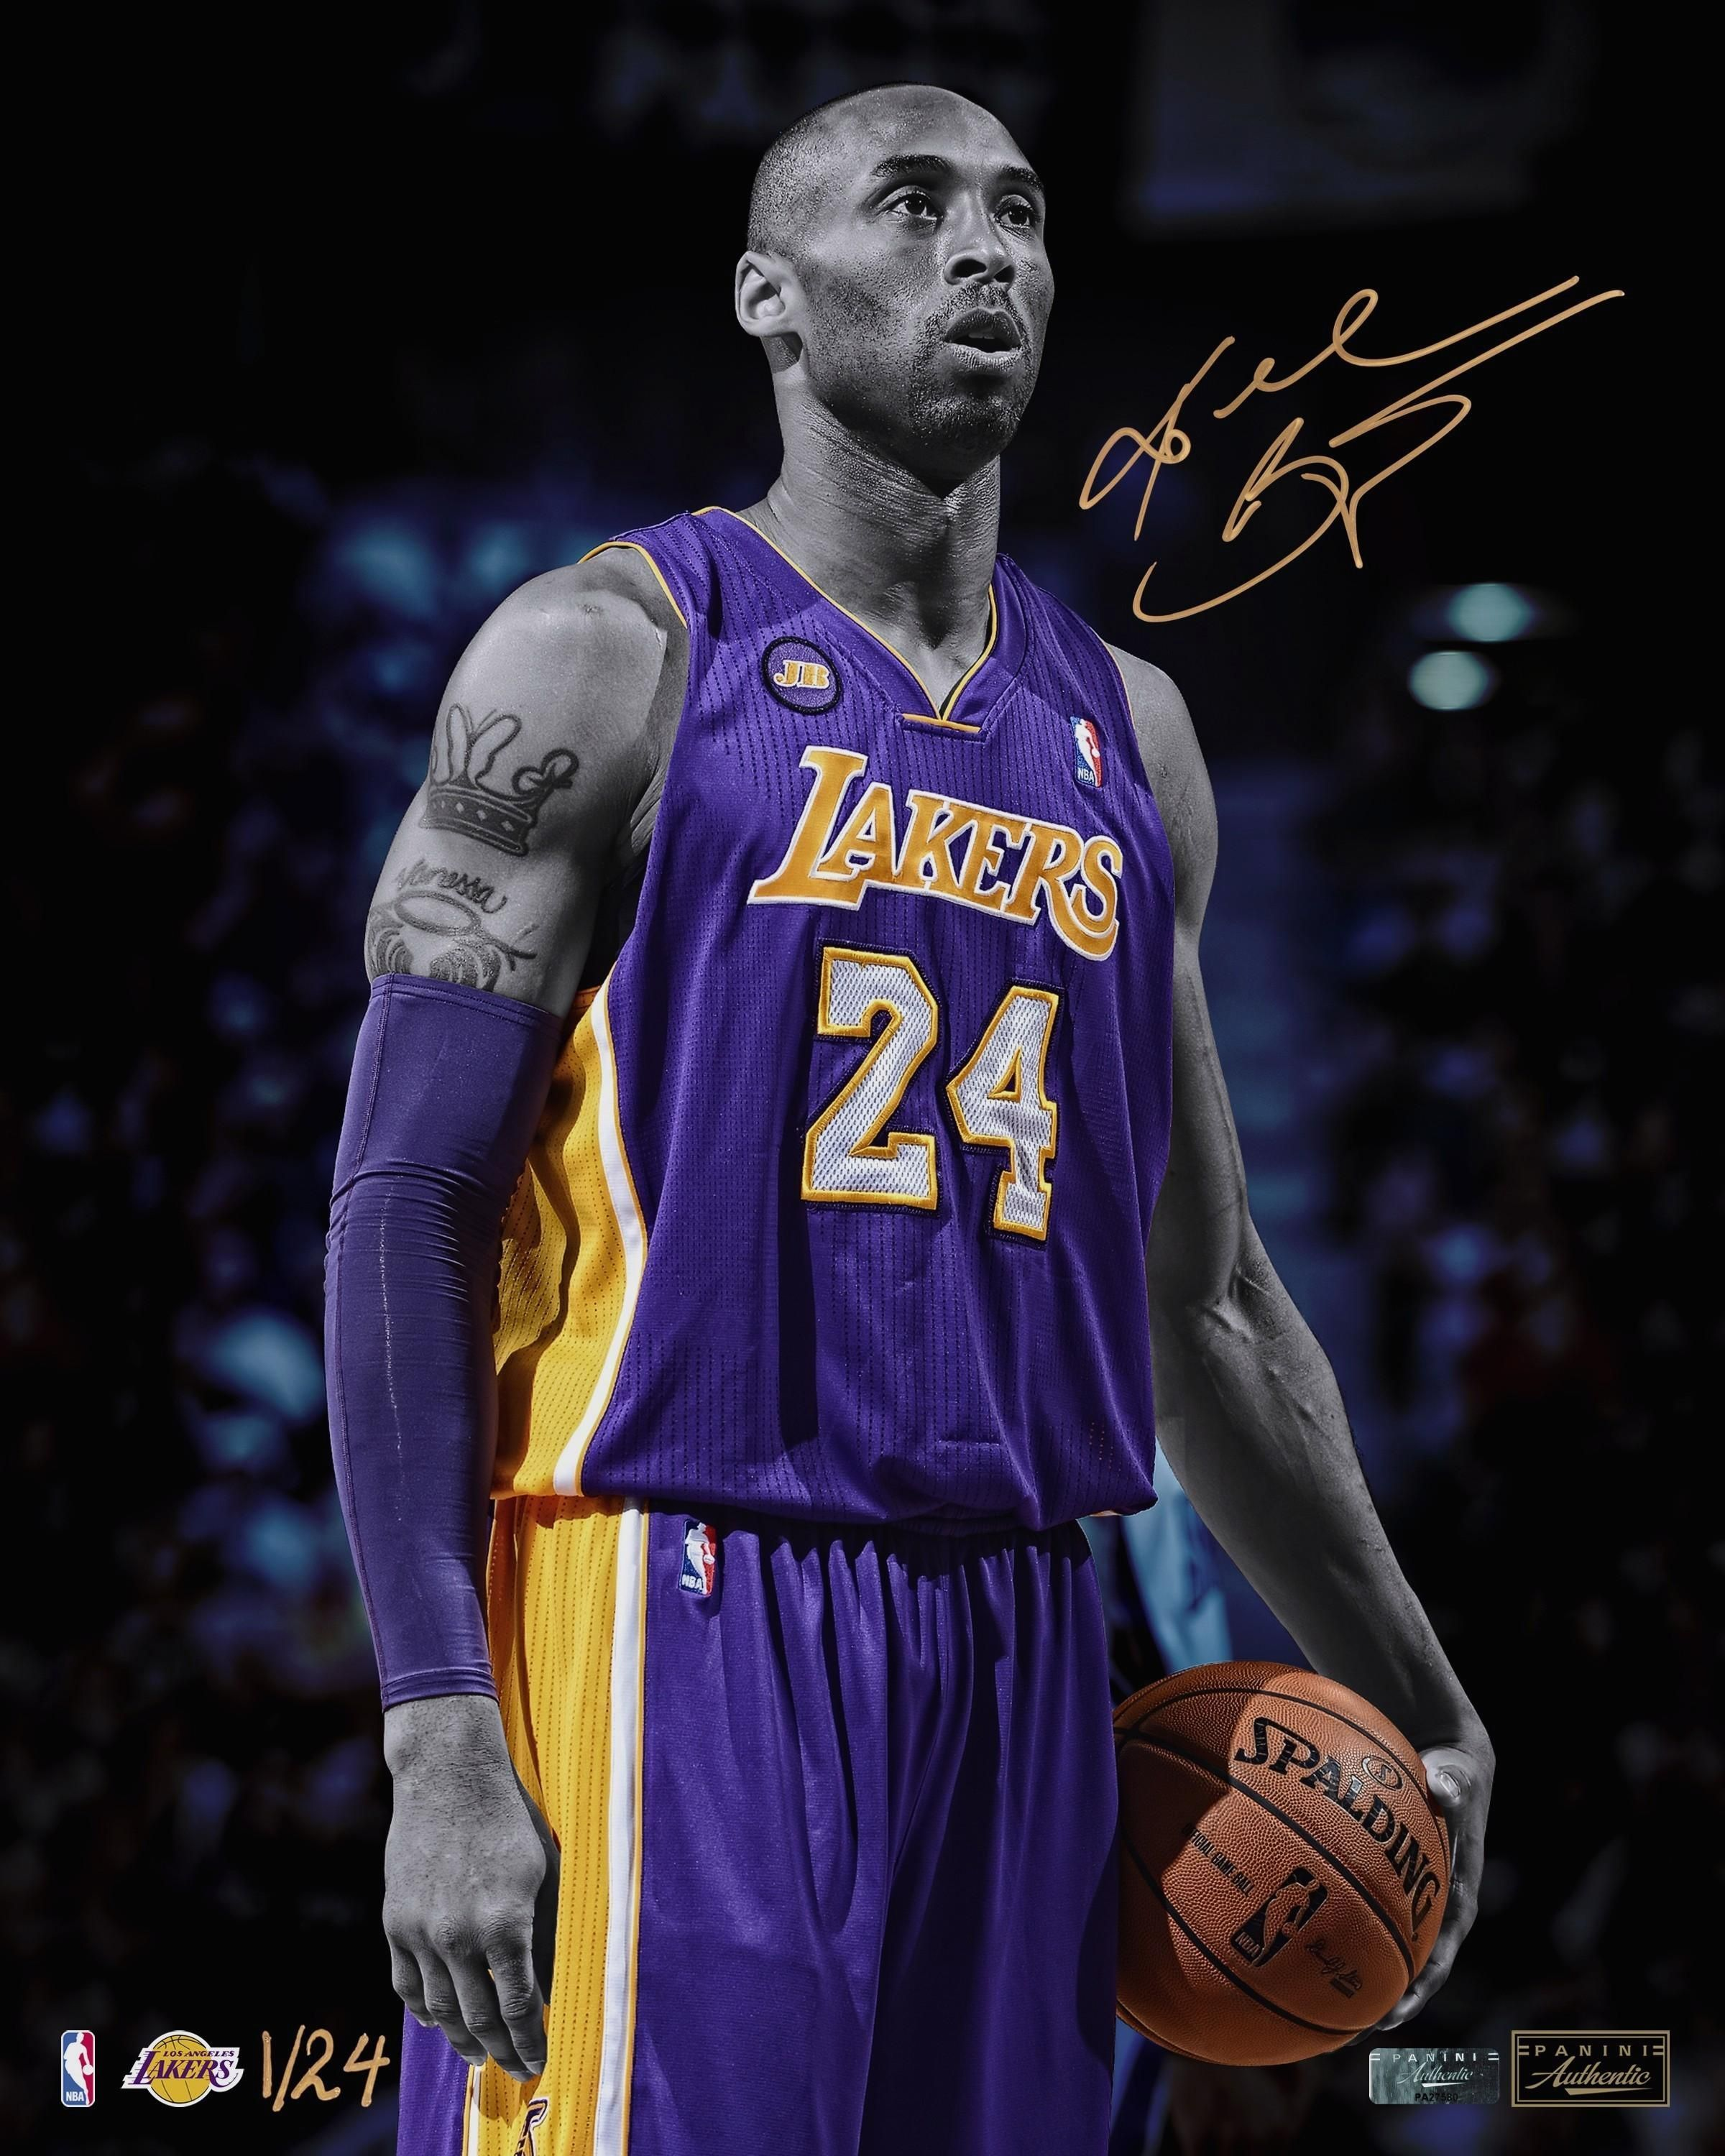 Nba Kobe Bryant Wallpapers Top Free Nba Kobe Bryant Backgrounds